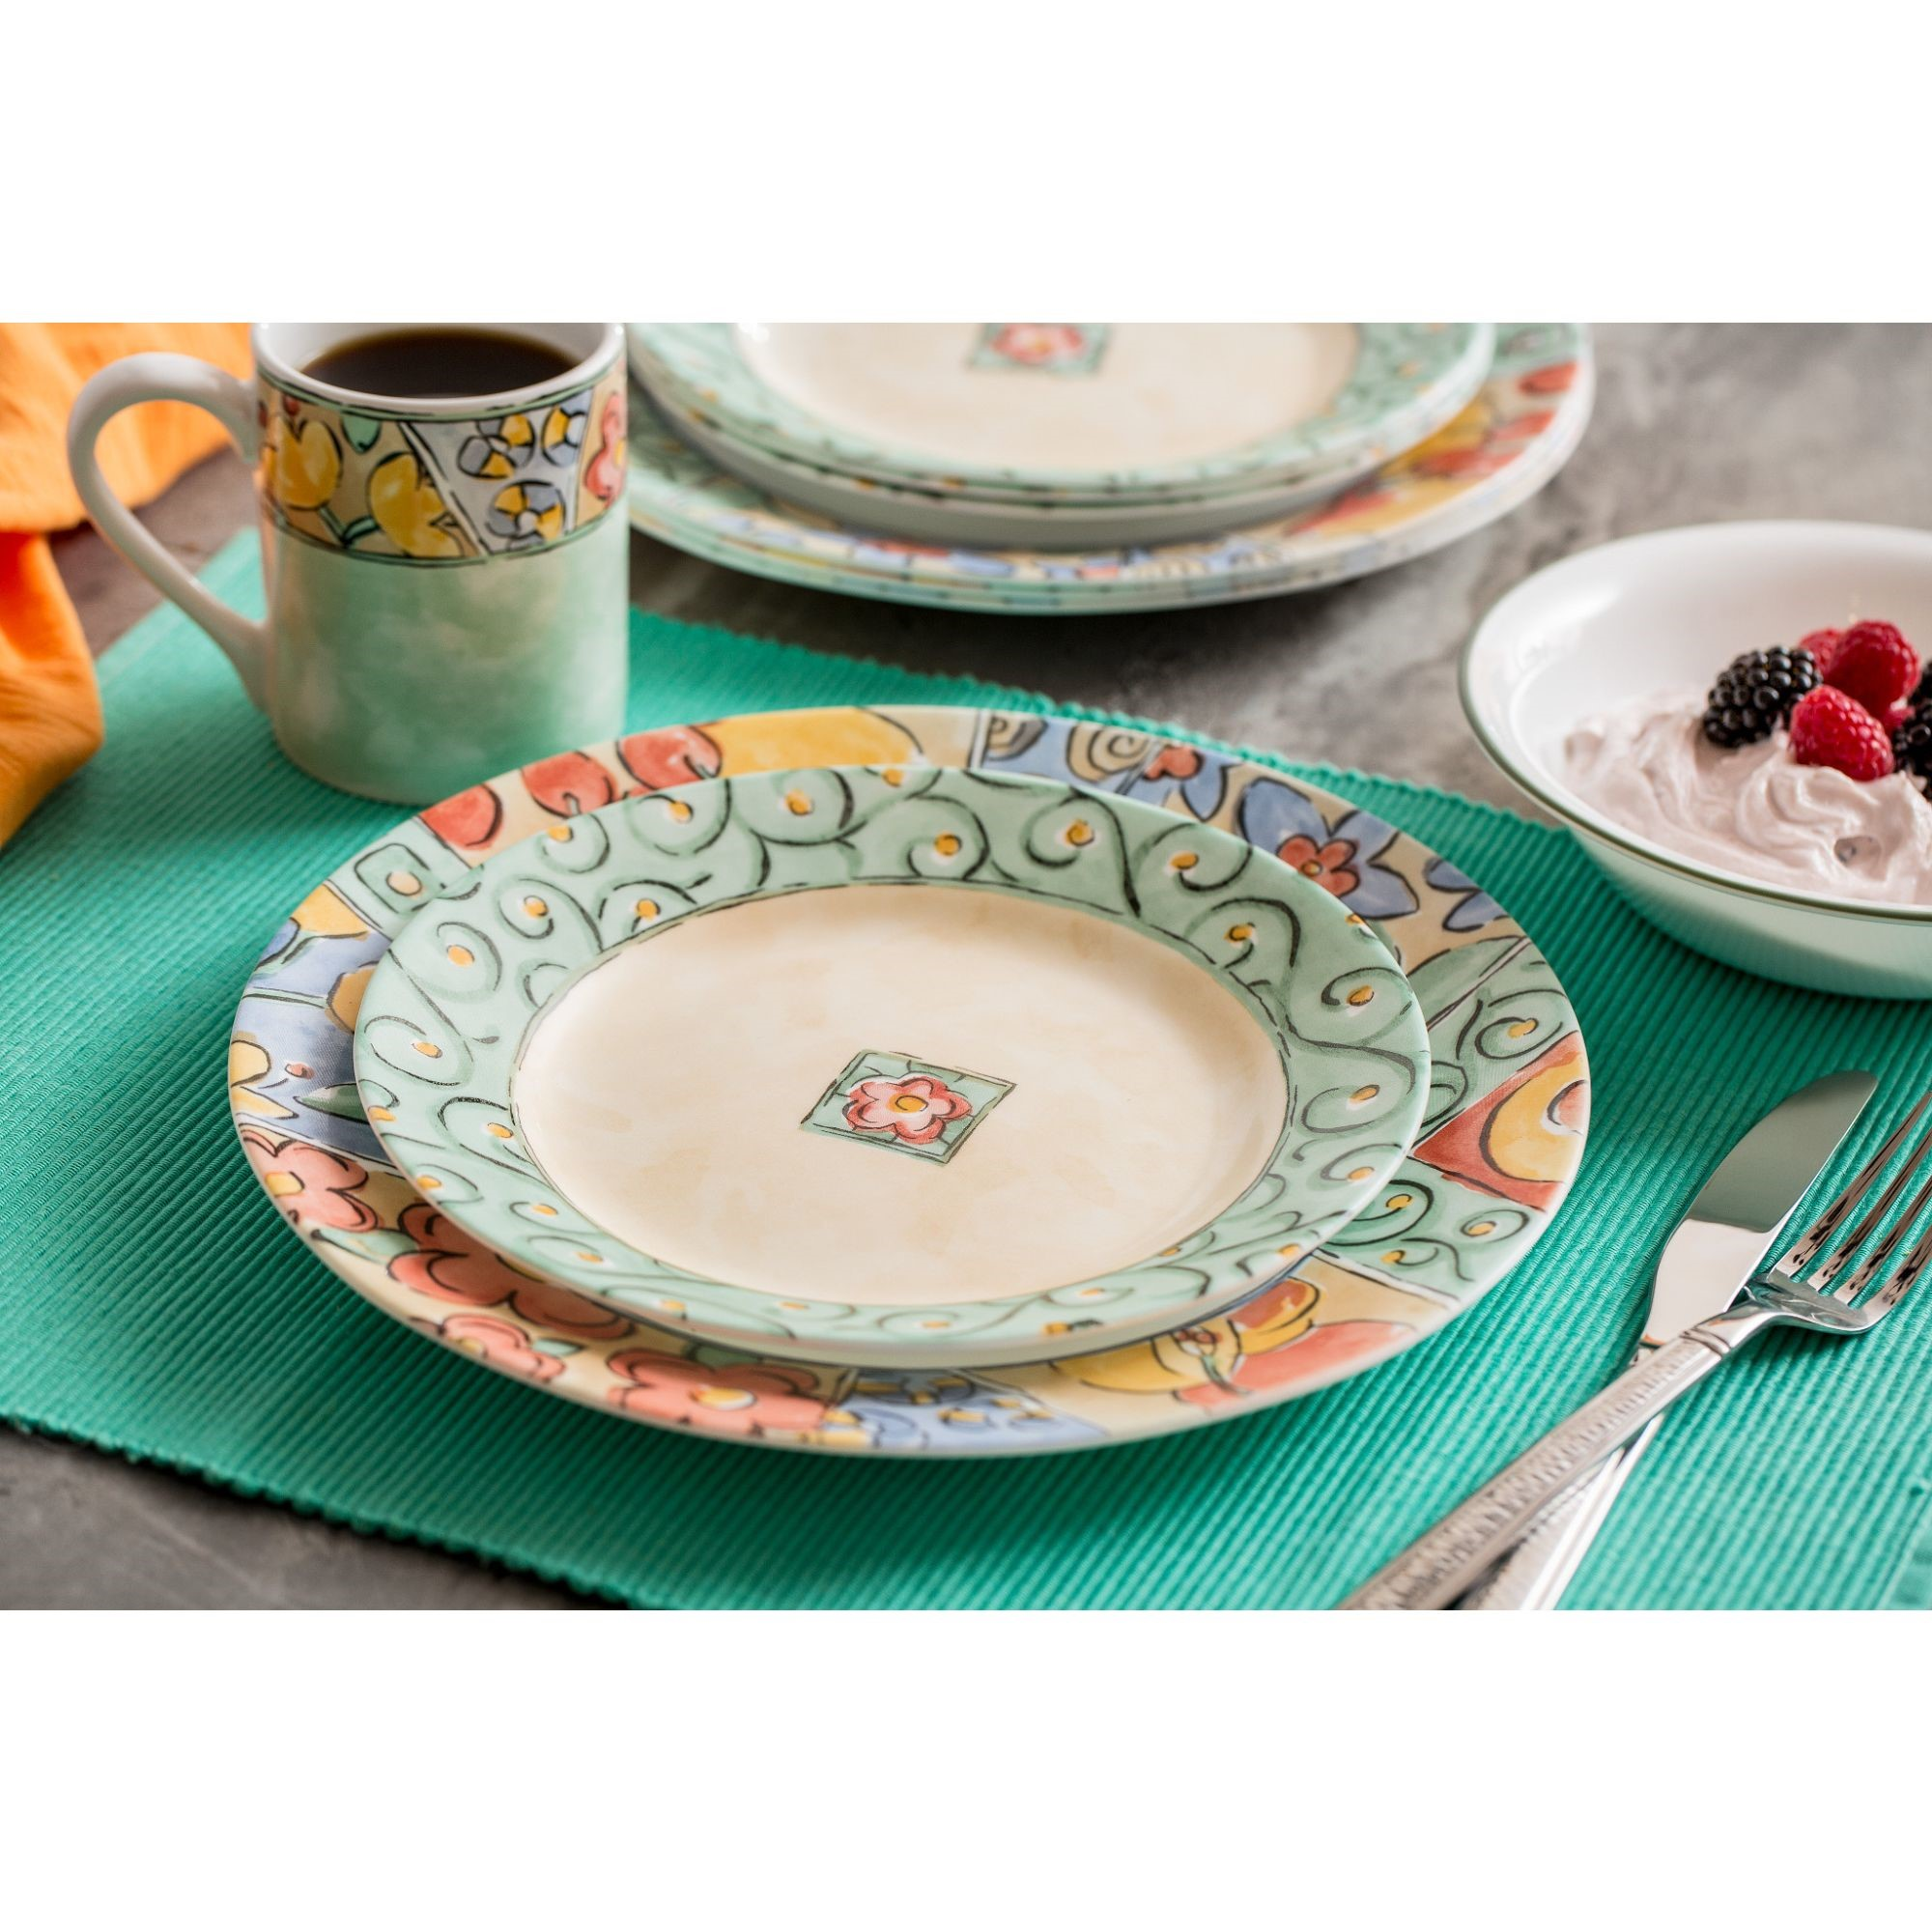 Corelle Impressions 16-Piece Dinnerware Set Watercolors  sc 1 st  Walmart & Corelle Impressions 16-Piece Dinnerware Set Watercolors - Walmart.com